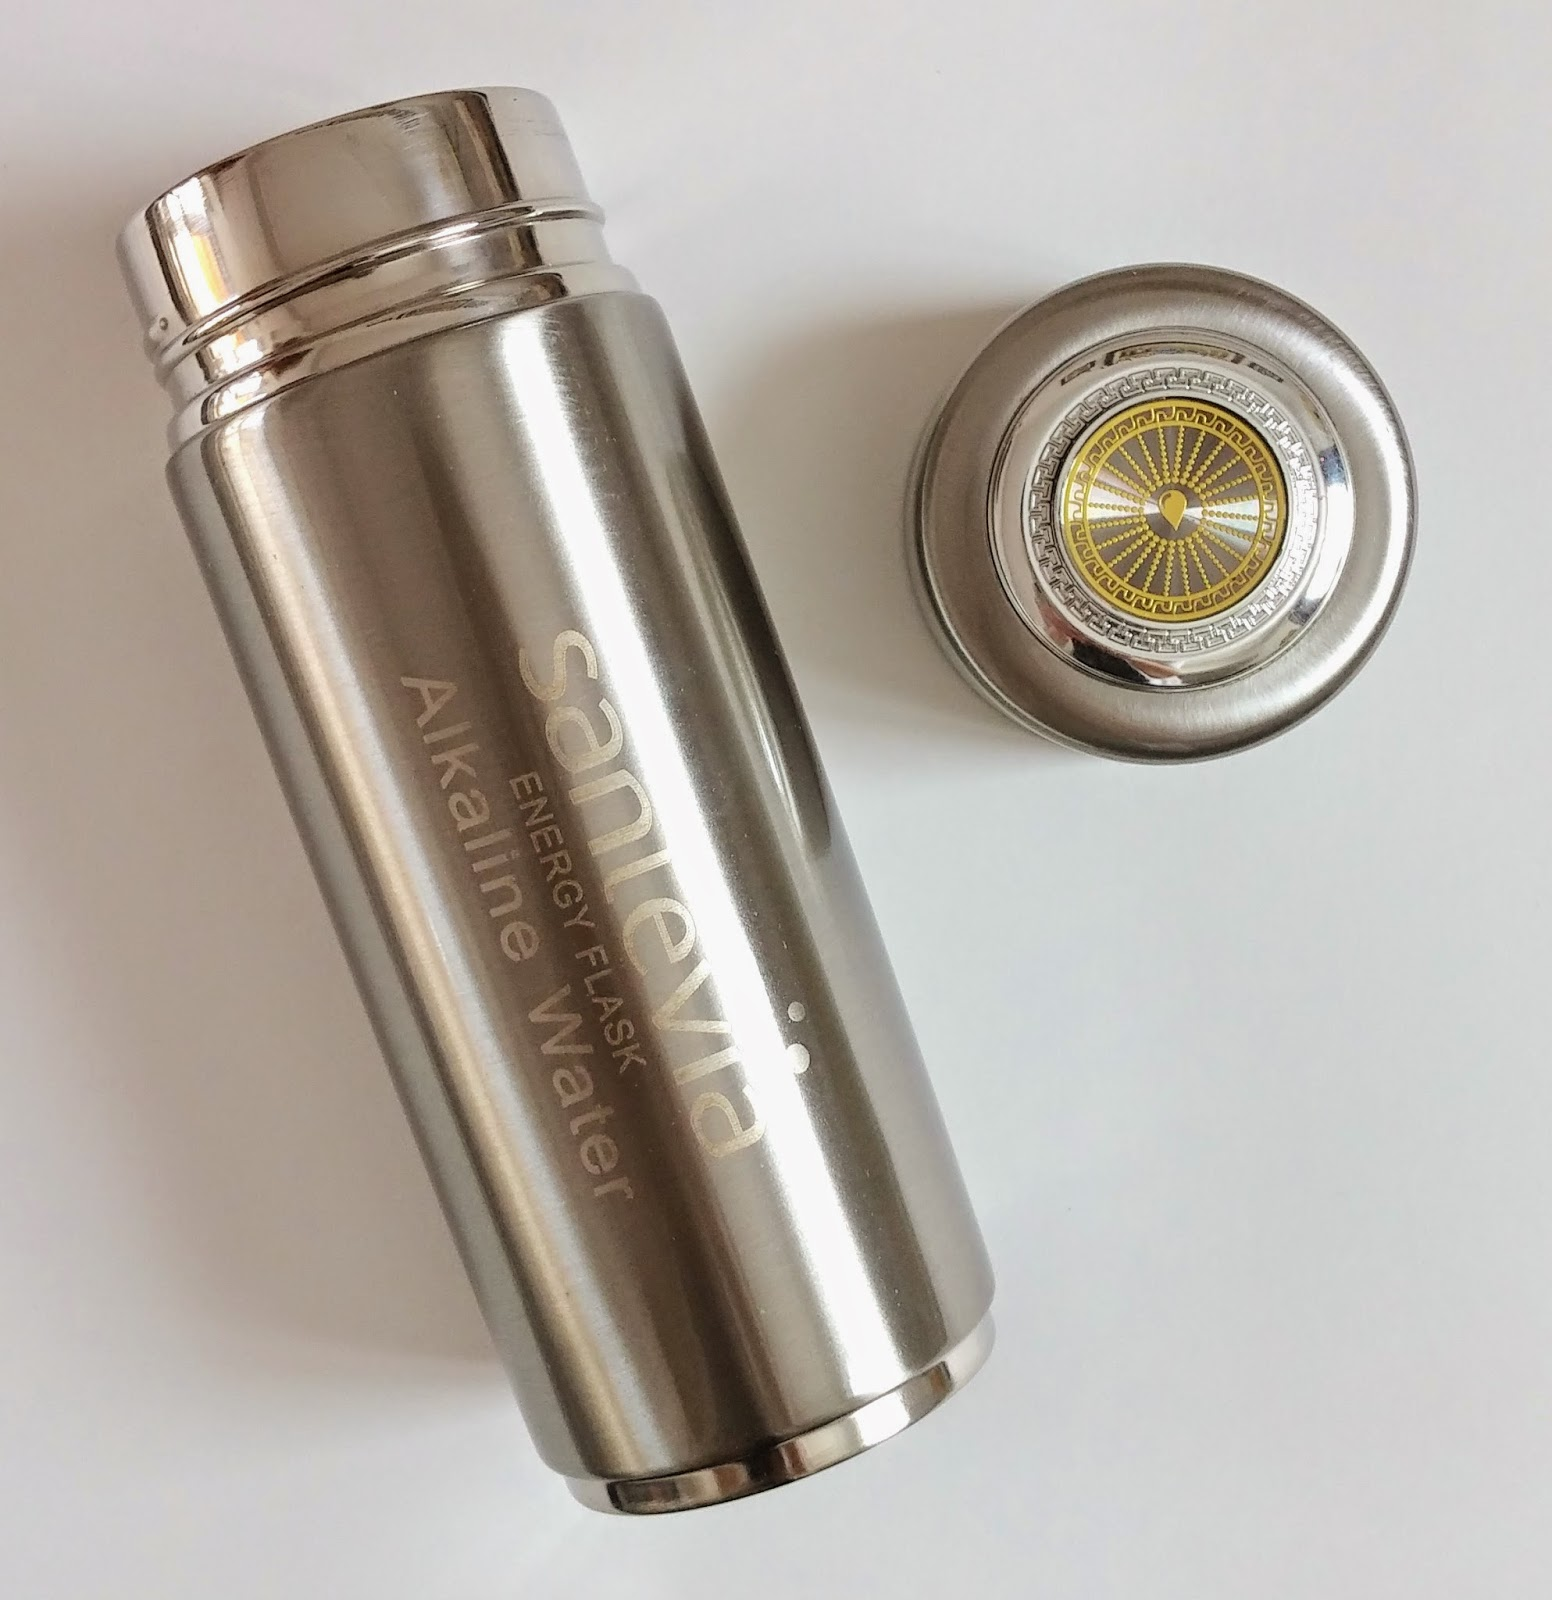 Healthy Planet - Santevia Alkaline Energy Flask